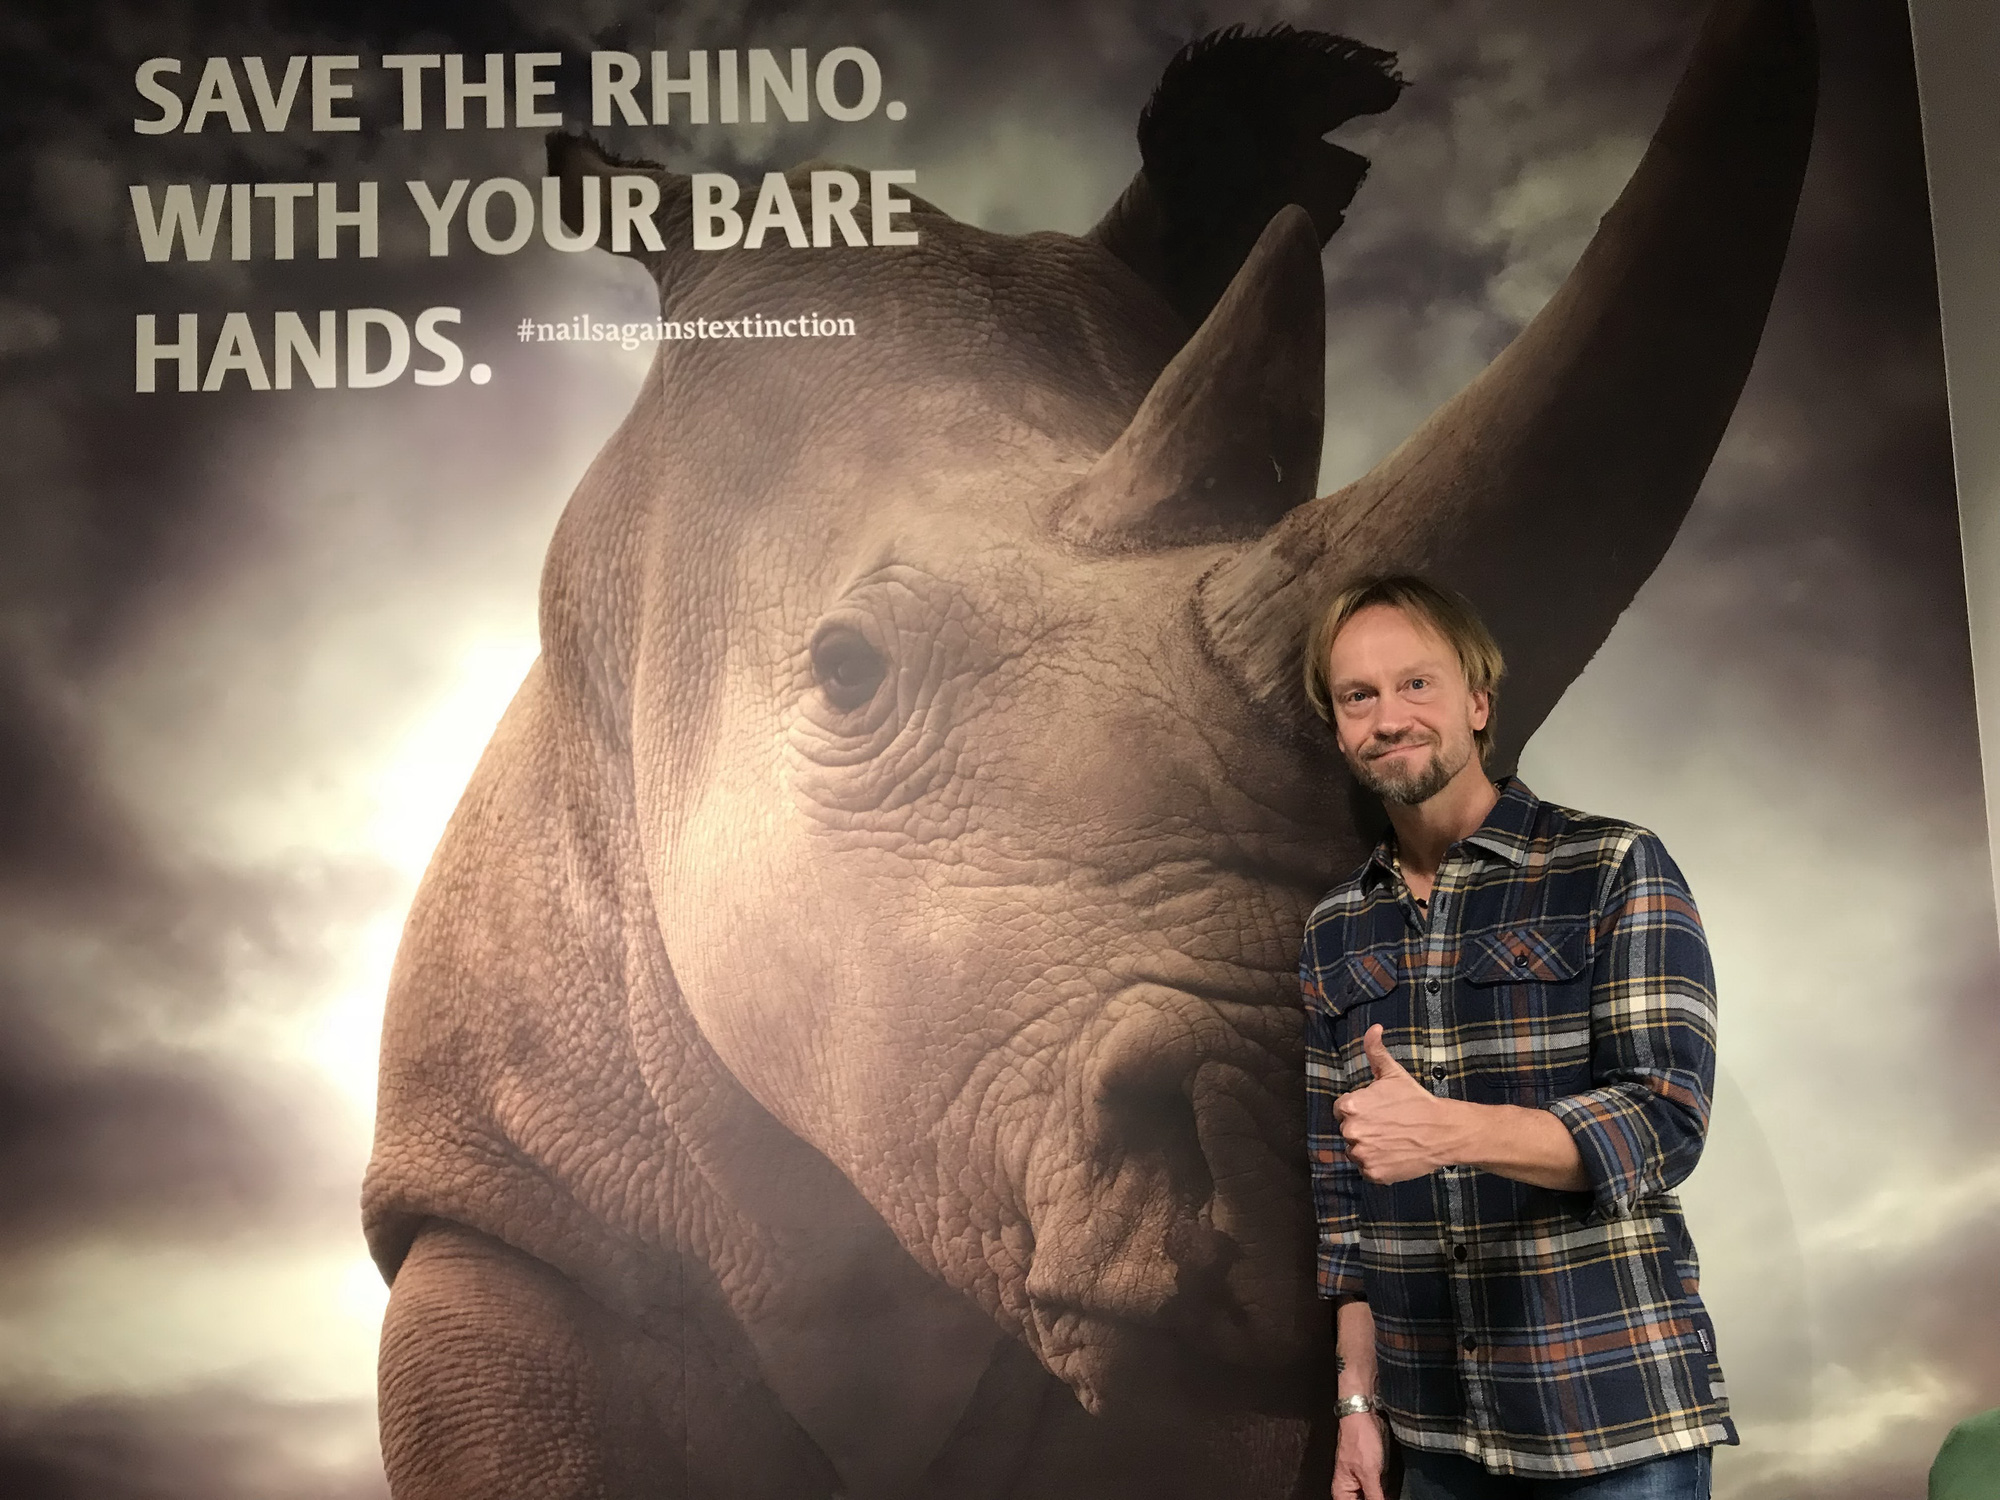 Swedish wildlife photographer Bjorn Persson at an exhibition in Stockholm, Sweden.